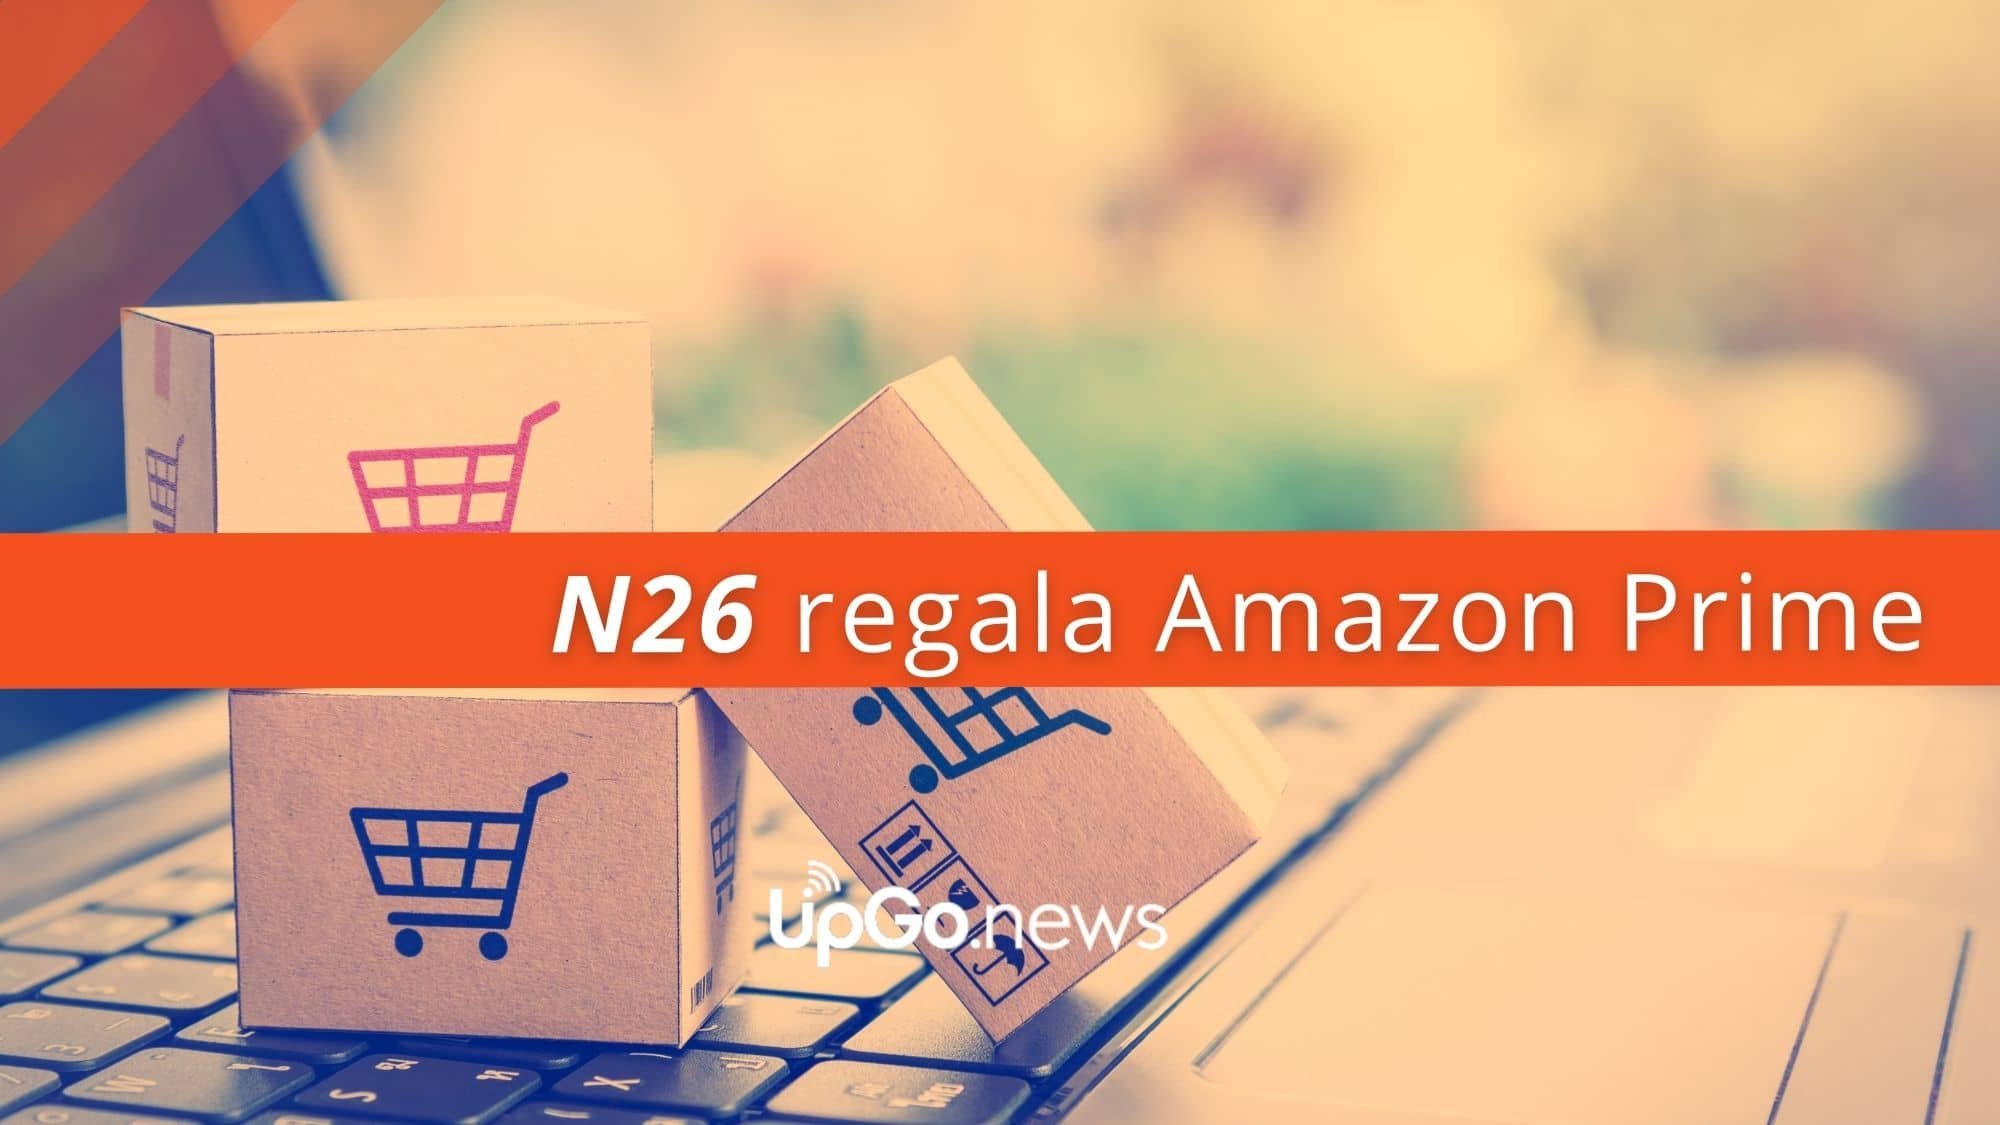 N26 regala Amazon Prime